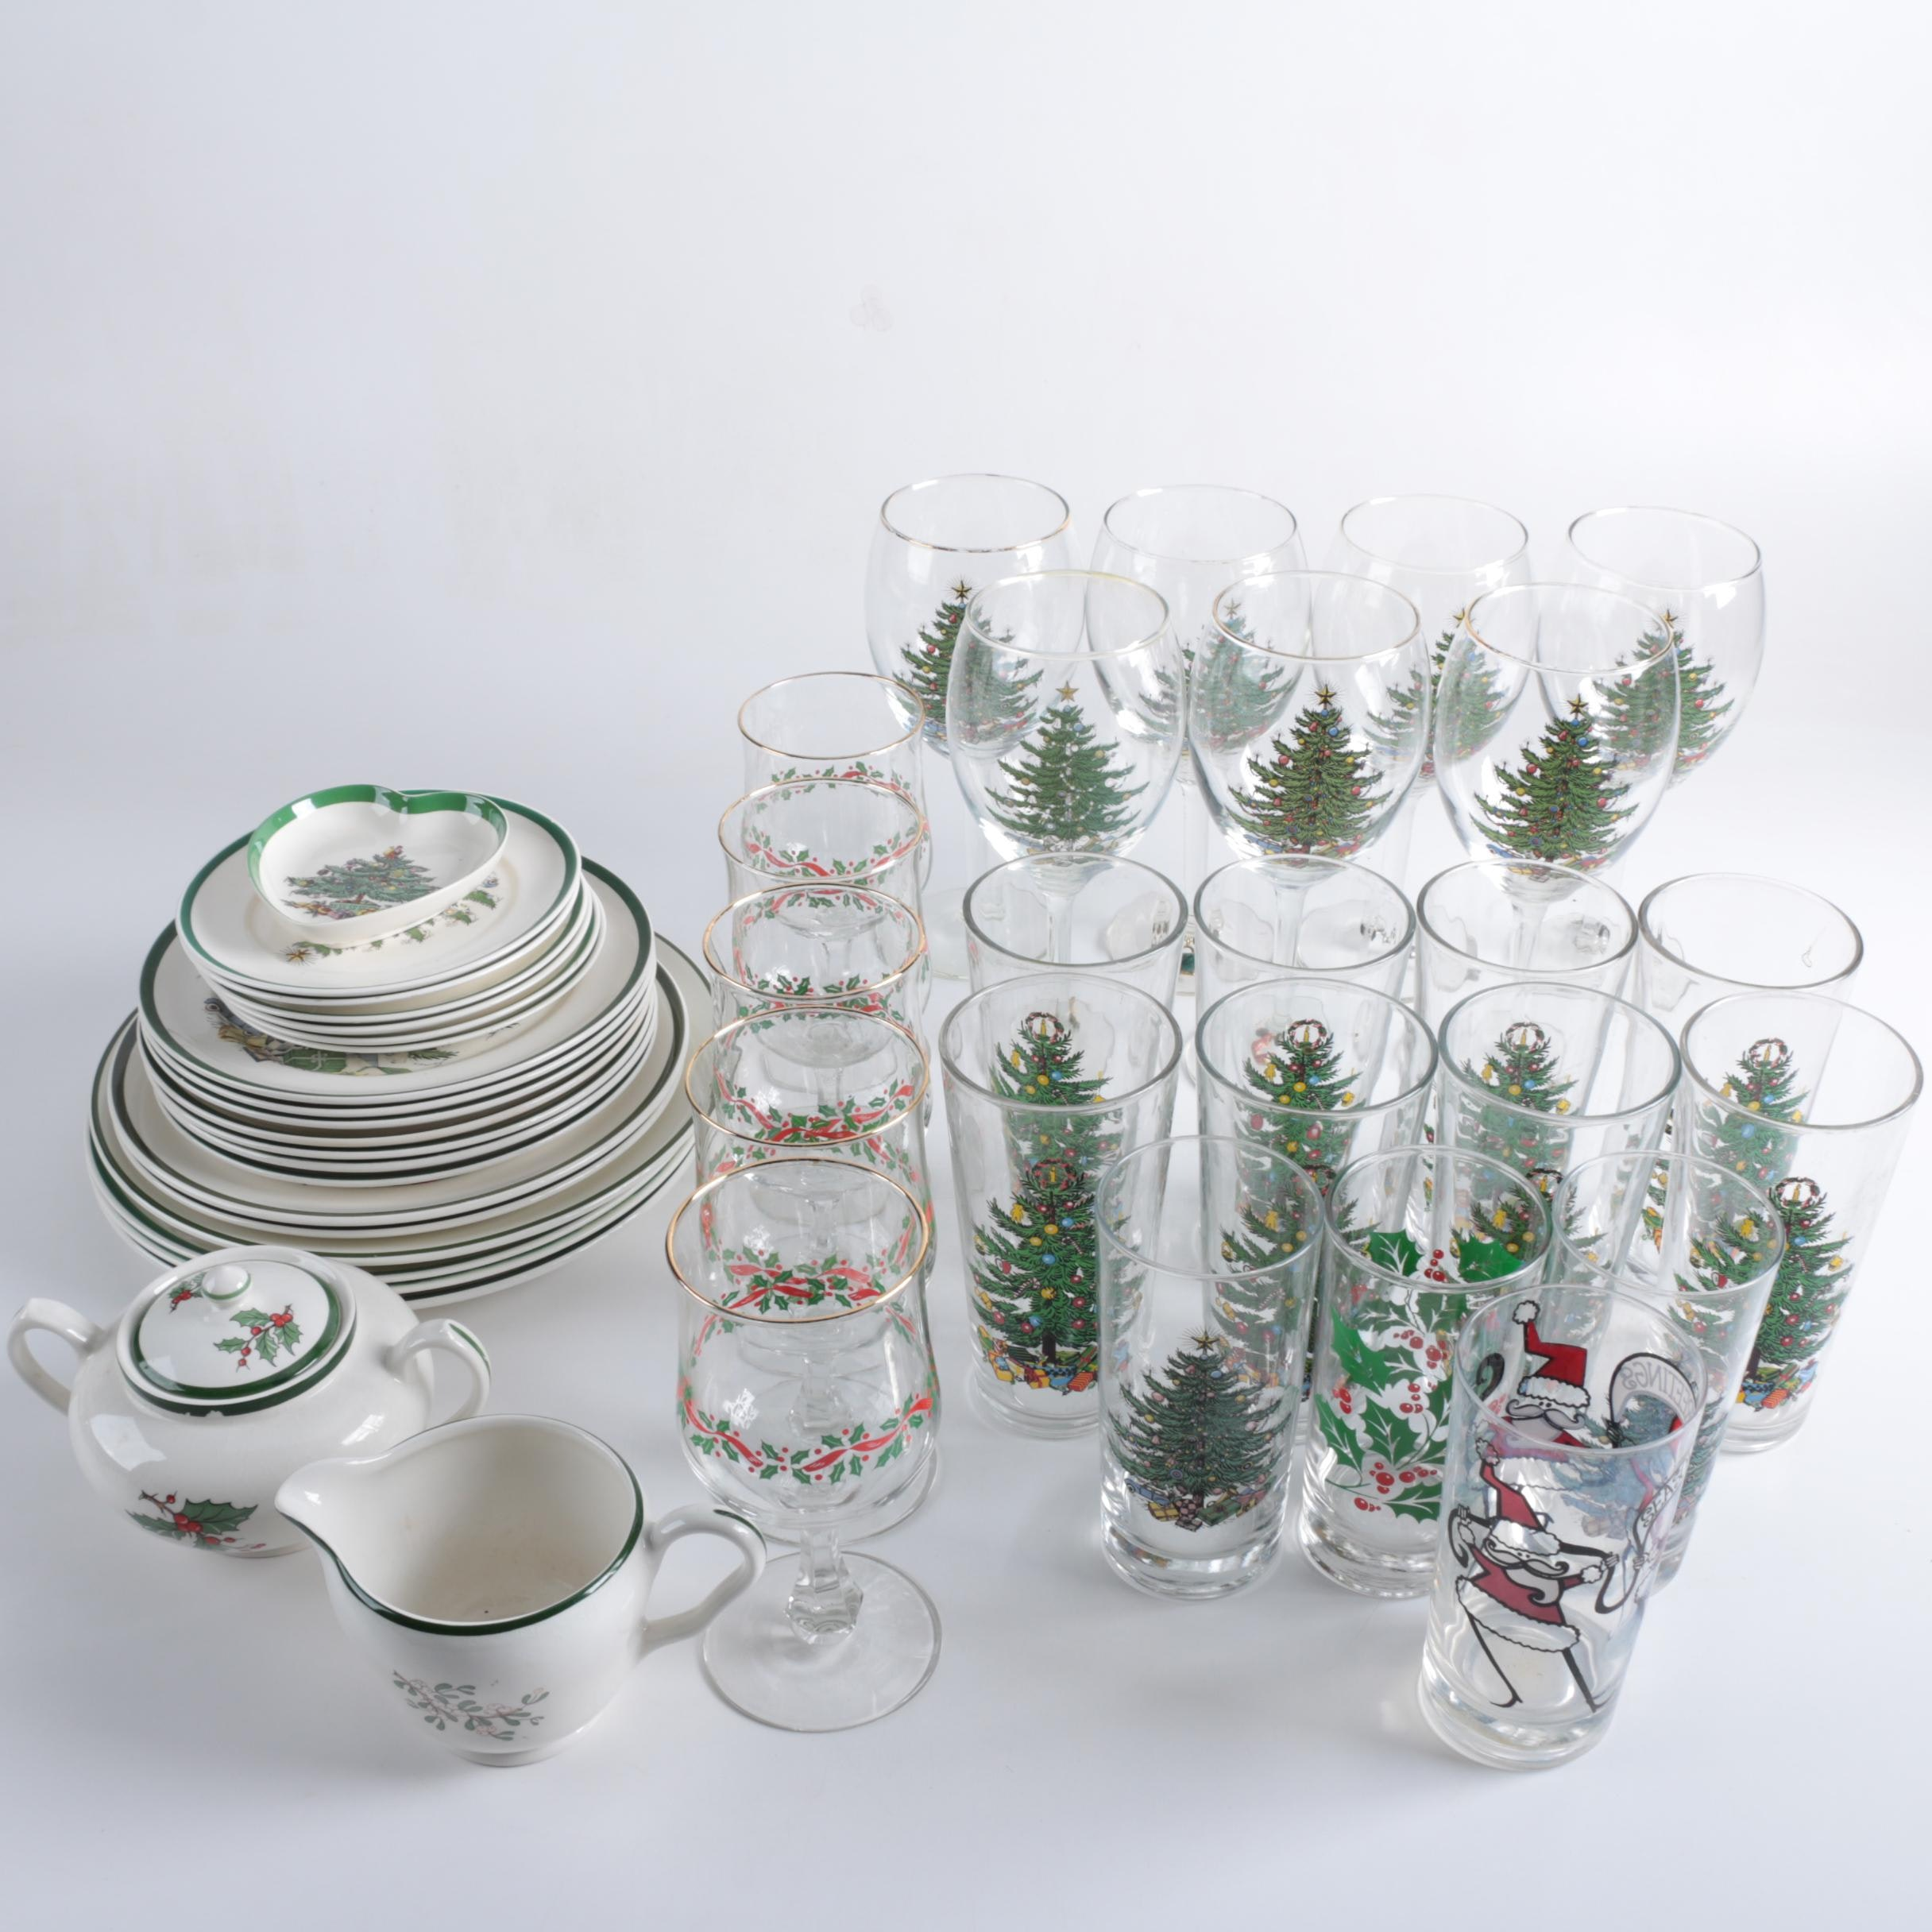 Christmas Themed Glasses Stemware and Tableware Including Spode and Cuthbertson